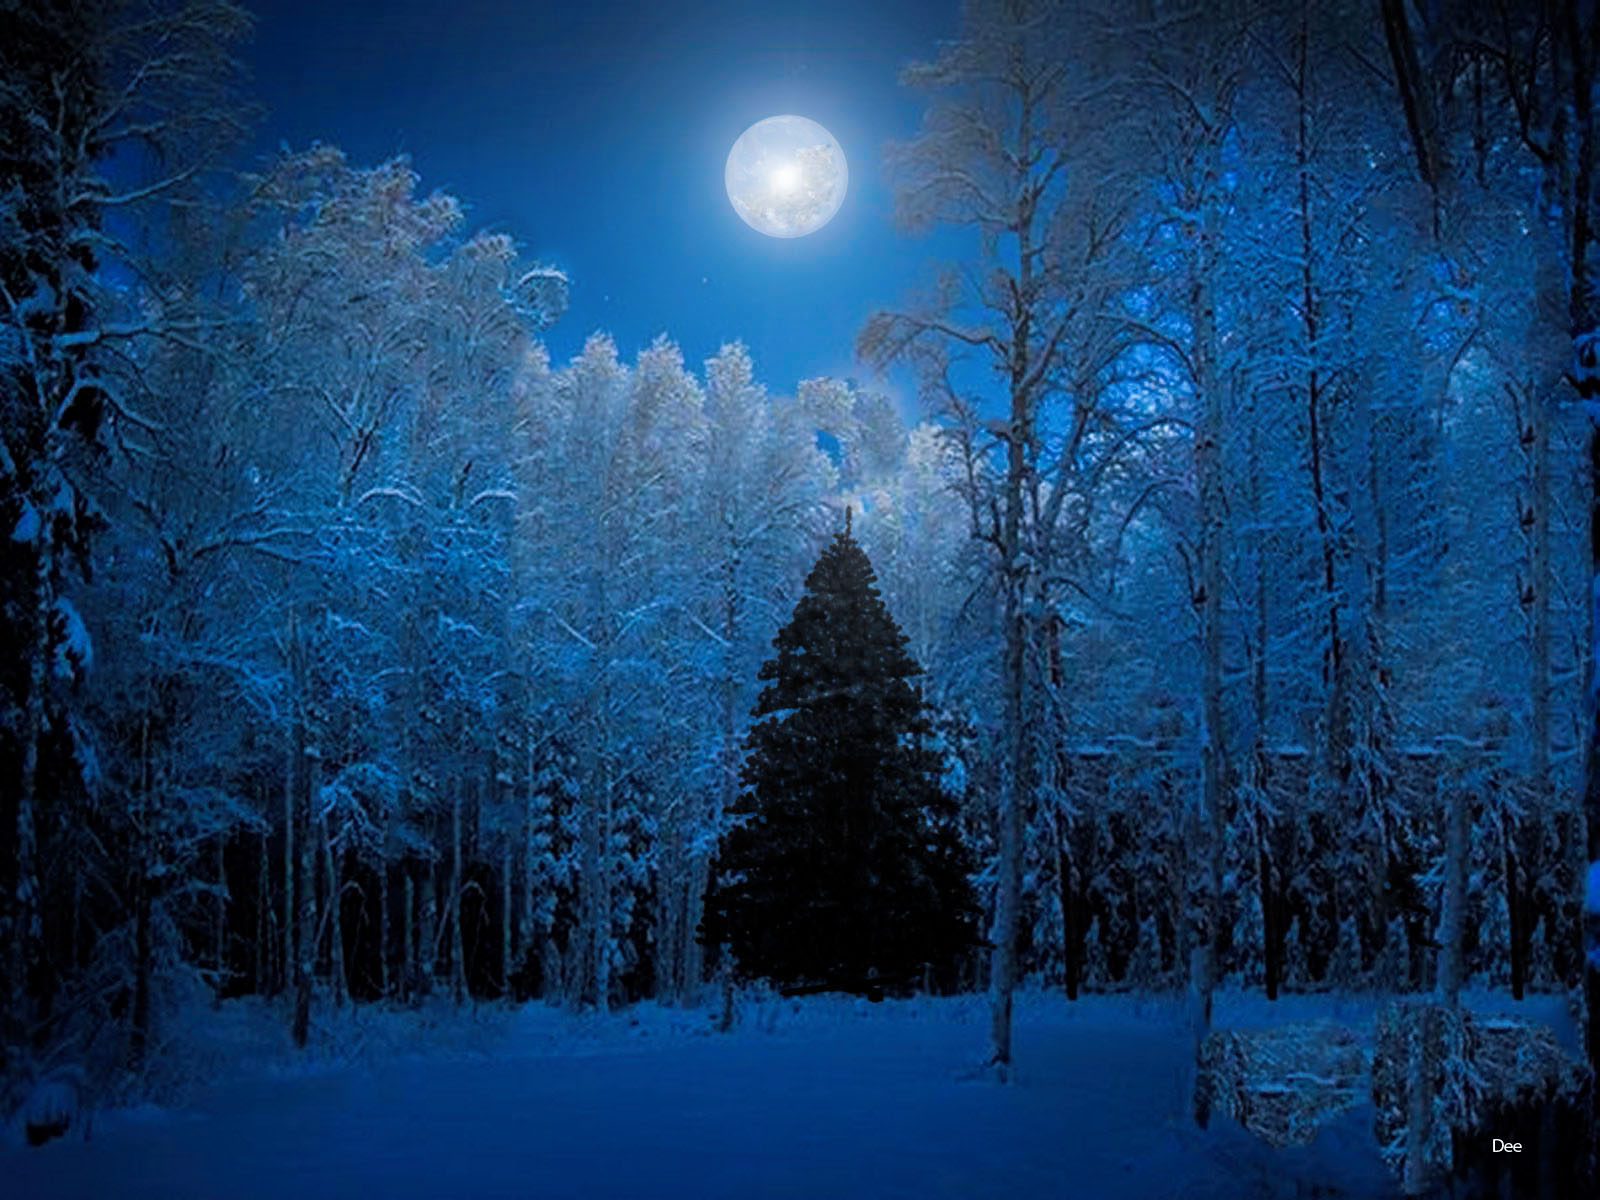 Blue Christmas Tree Forum Avatar: Snow Forest Wallpaper And Background Image